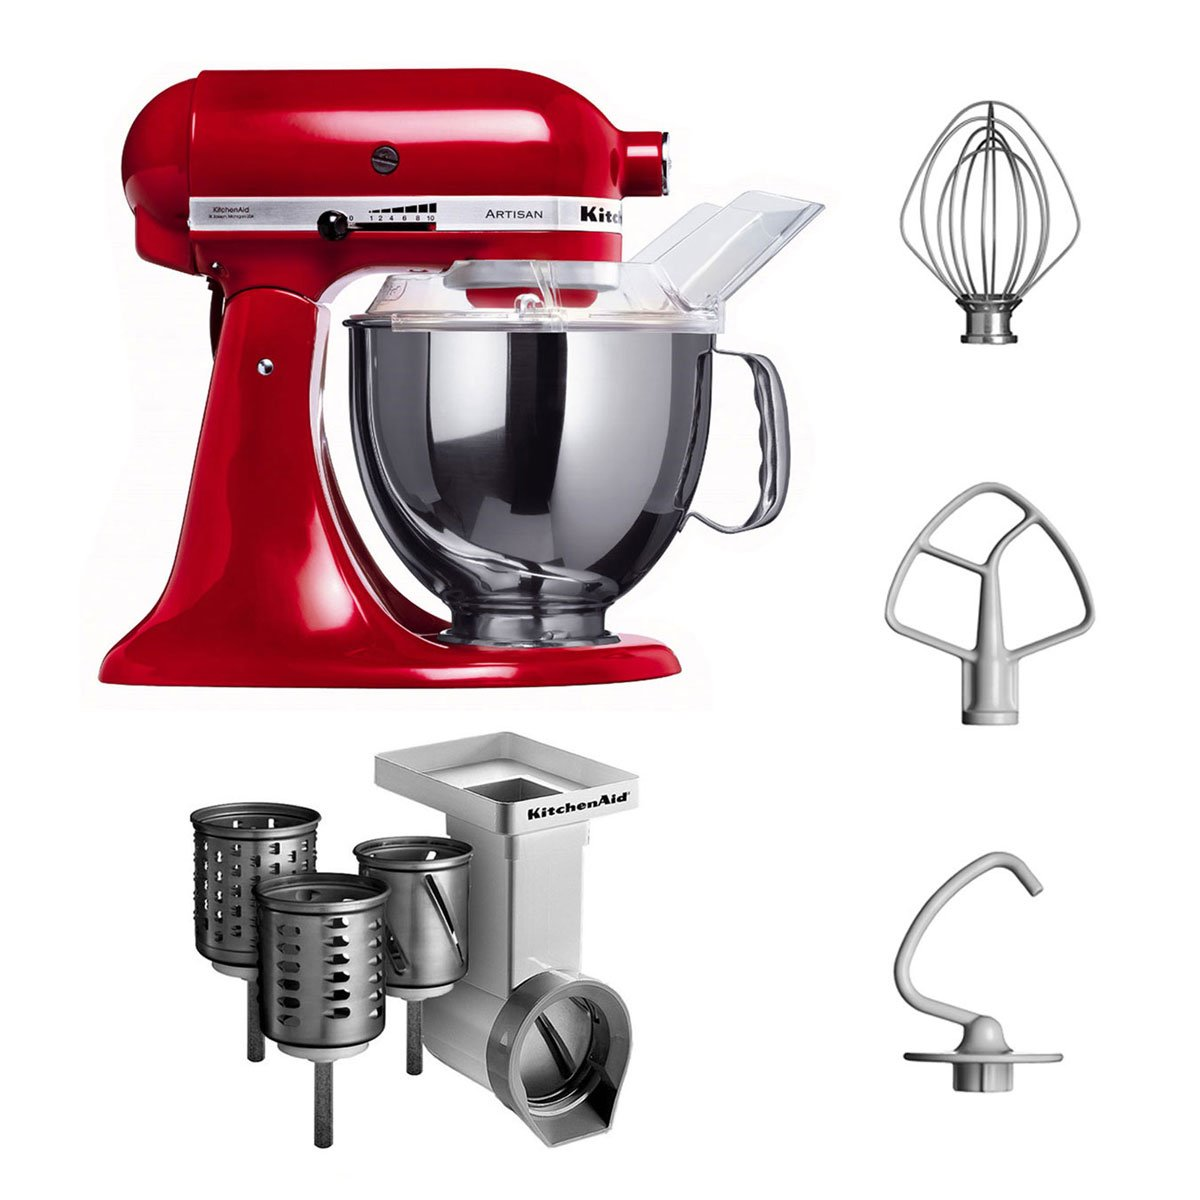 Amazon.de: KitchenAid 5KSM150PSECA4 Küchenmaschine mit kippbarem ...